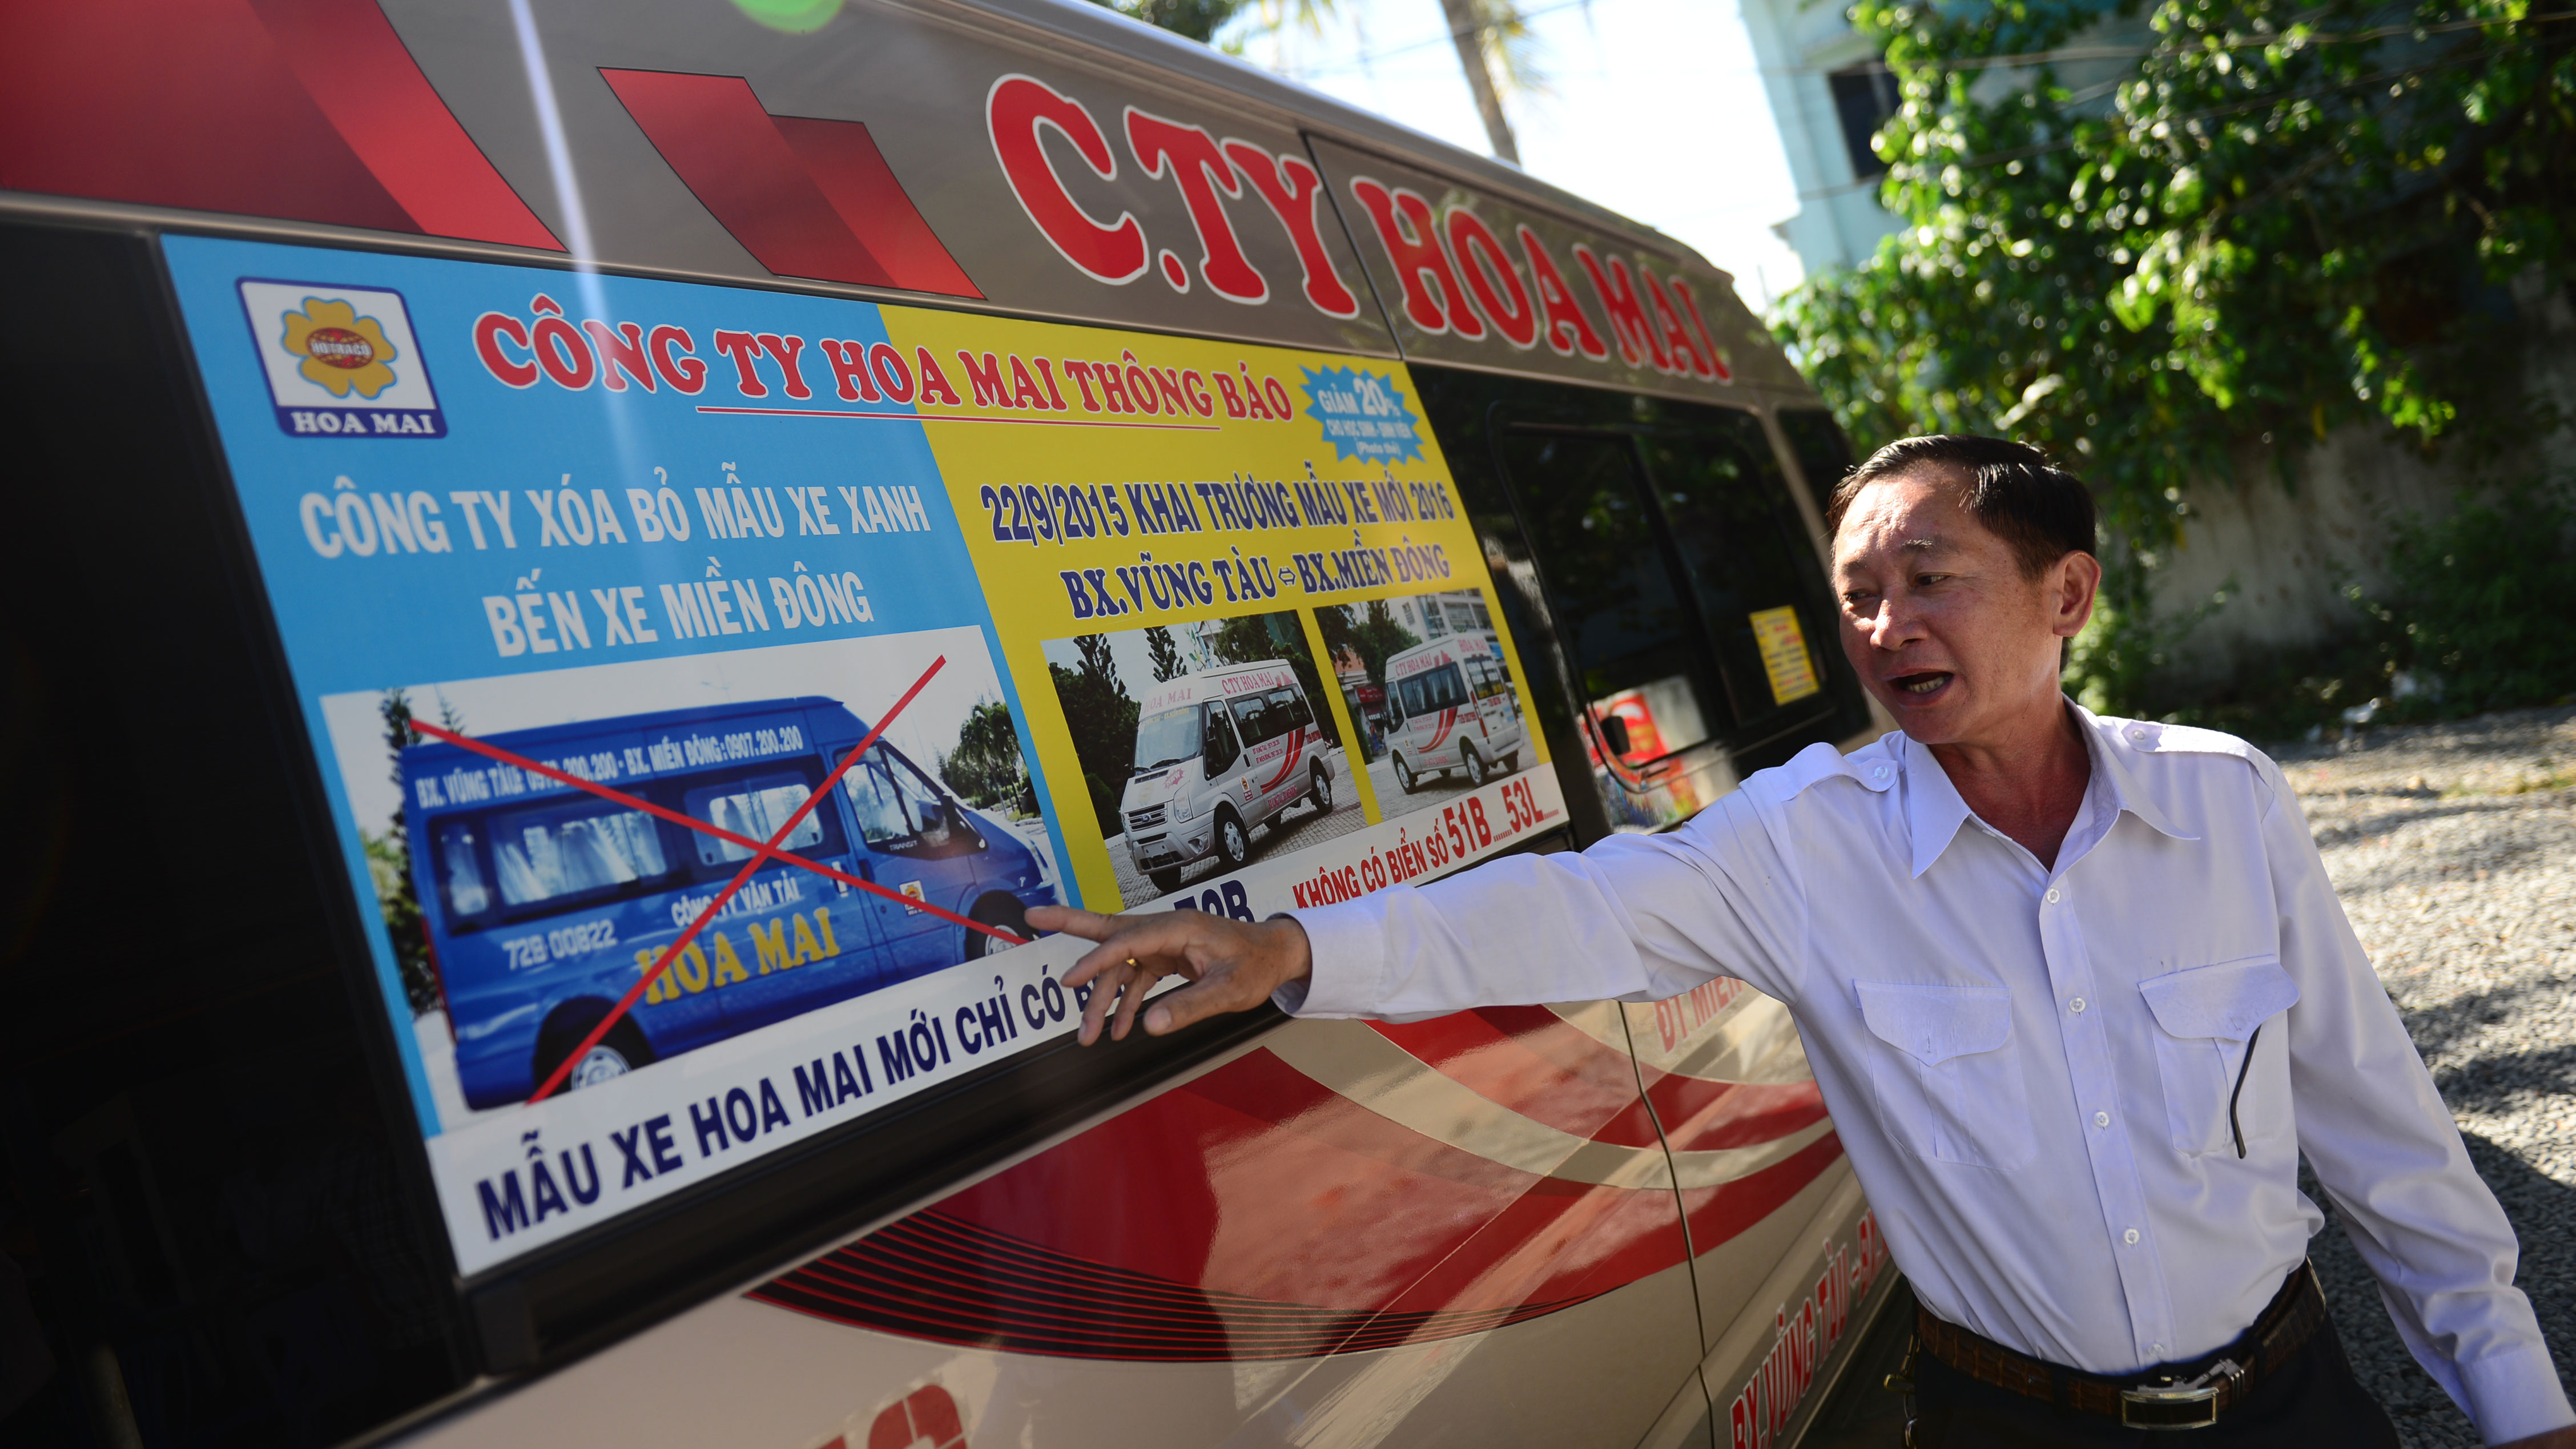 Police in southern Vietnam to probe fake buses that cheat, threaten passengers